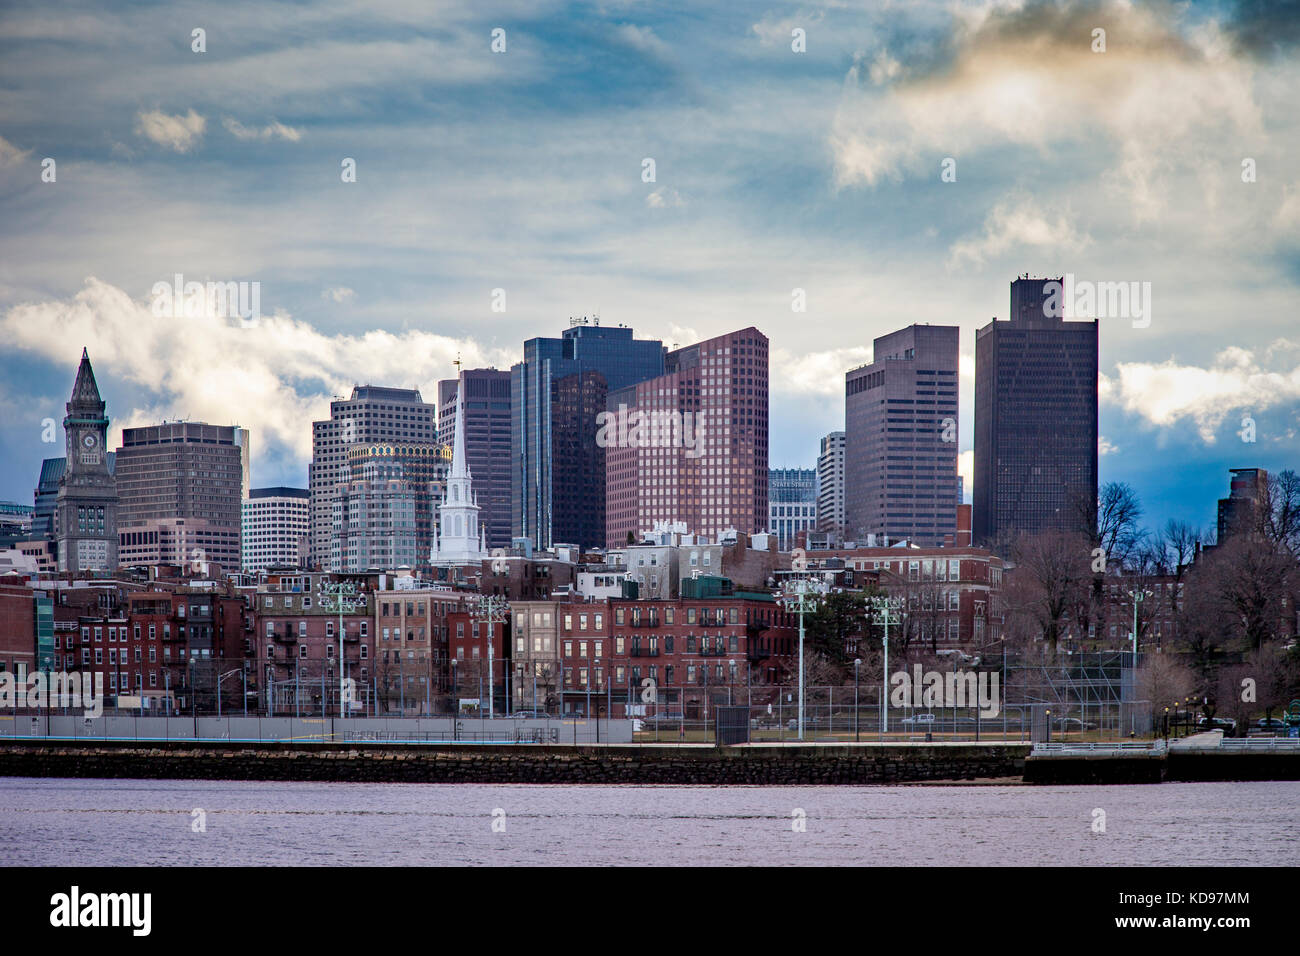 Evening view of Boston's North End across Charles River from Charlestown, Massachusetts, USA - Stock Image